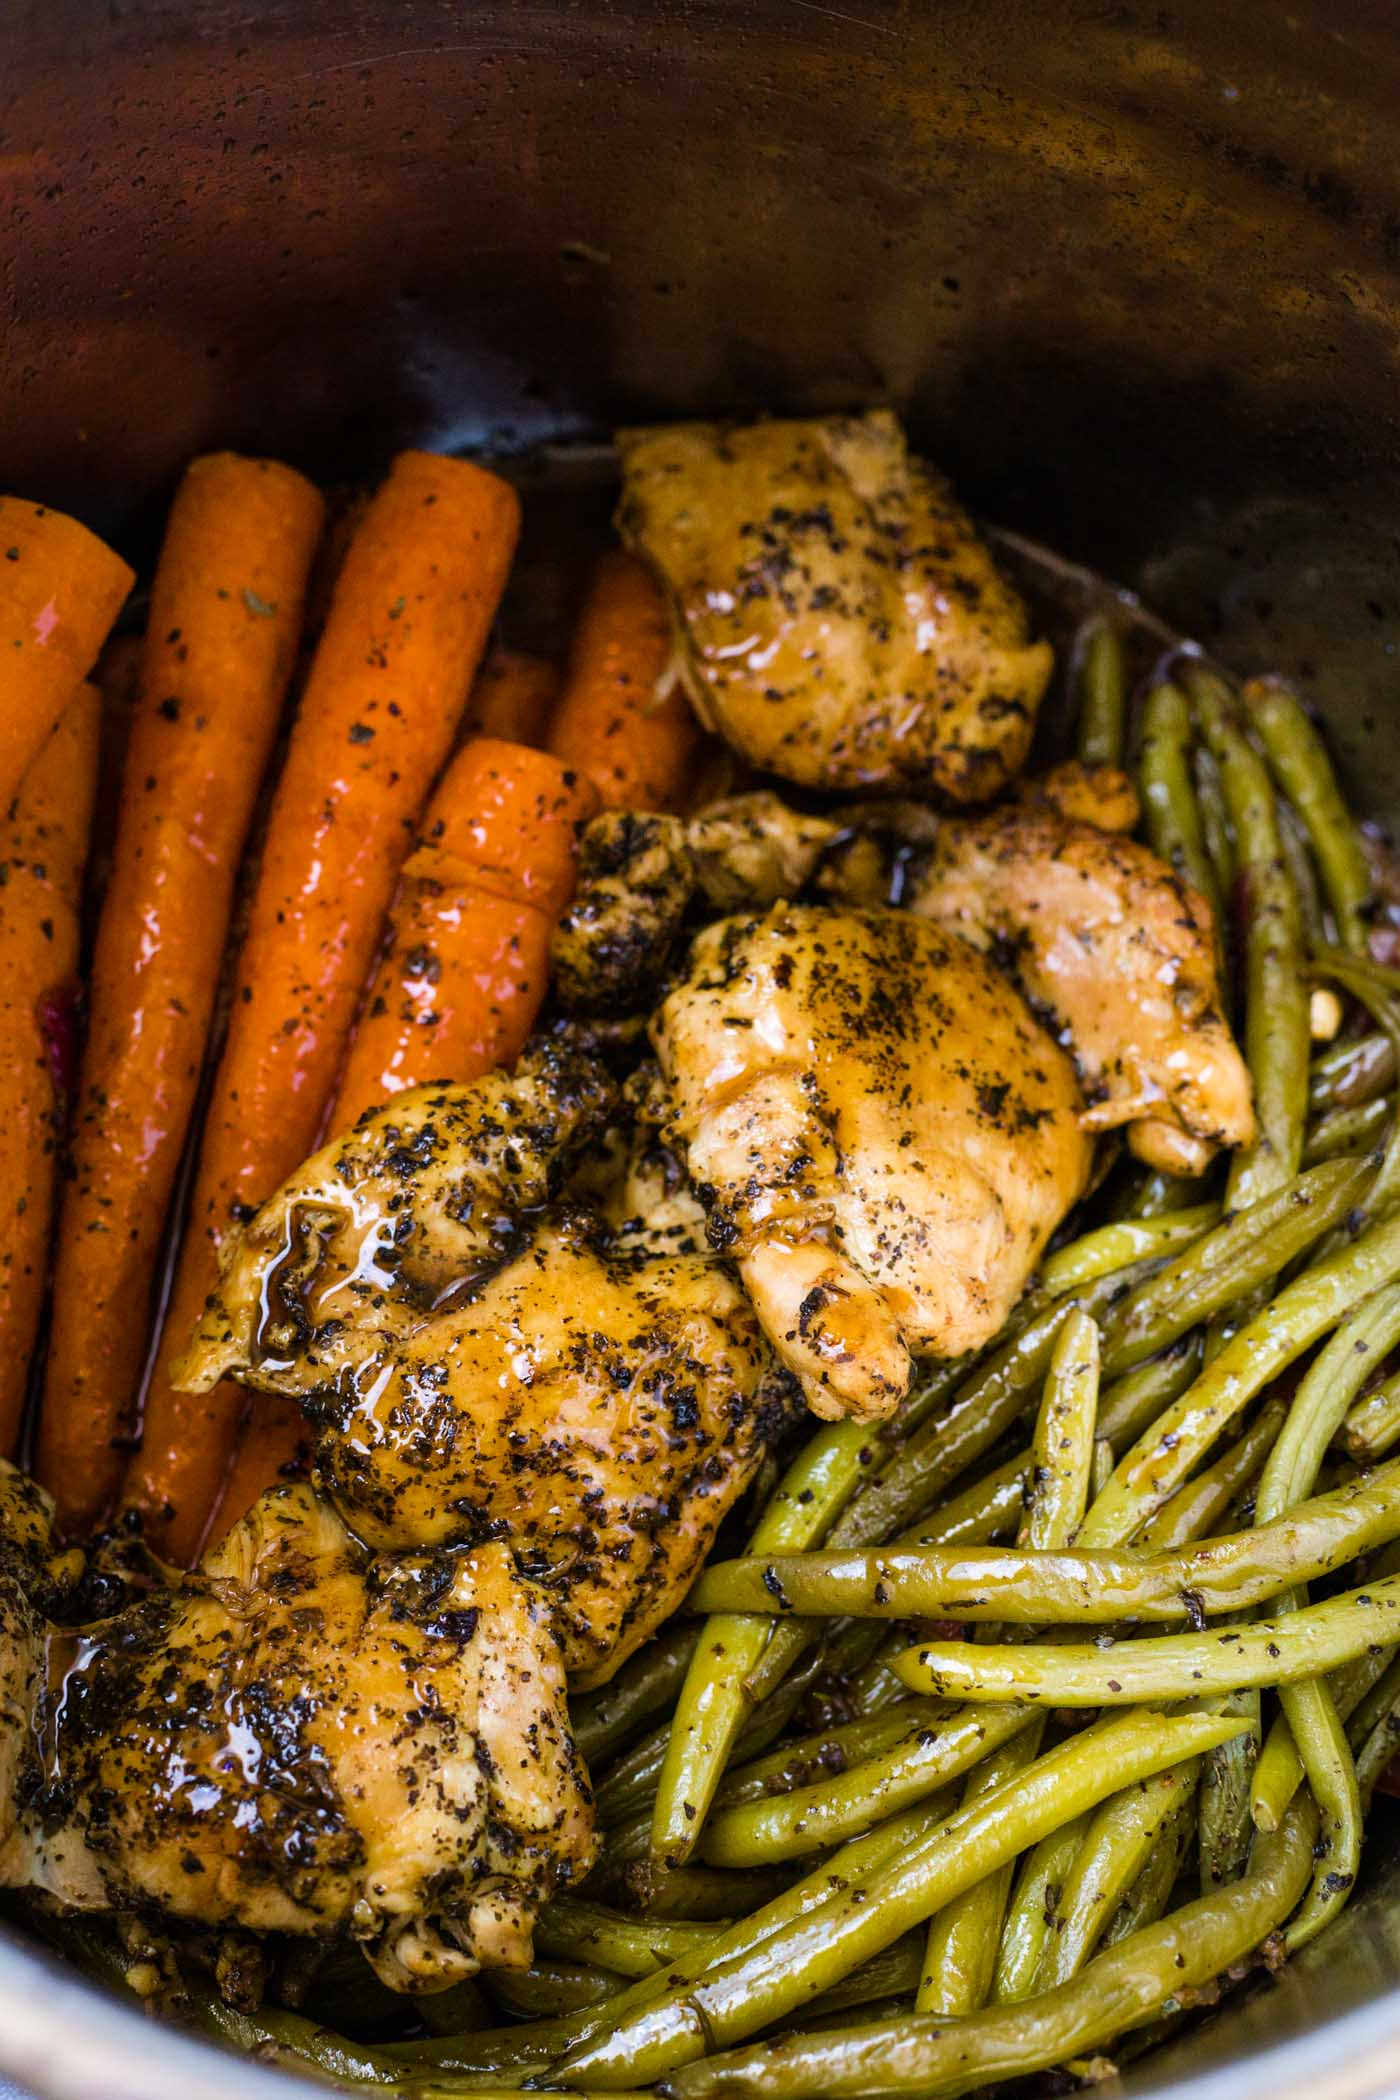 Instant pot full of cooked chicken thighs, carrots and green beans